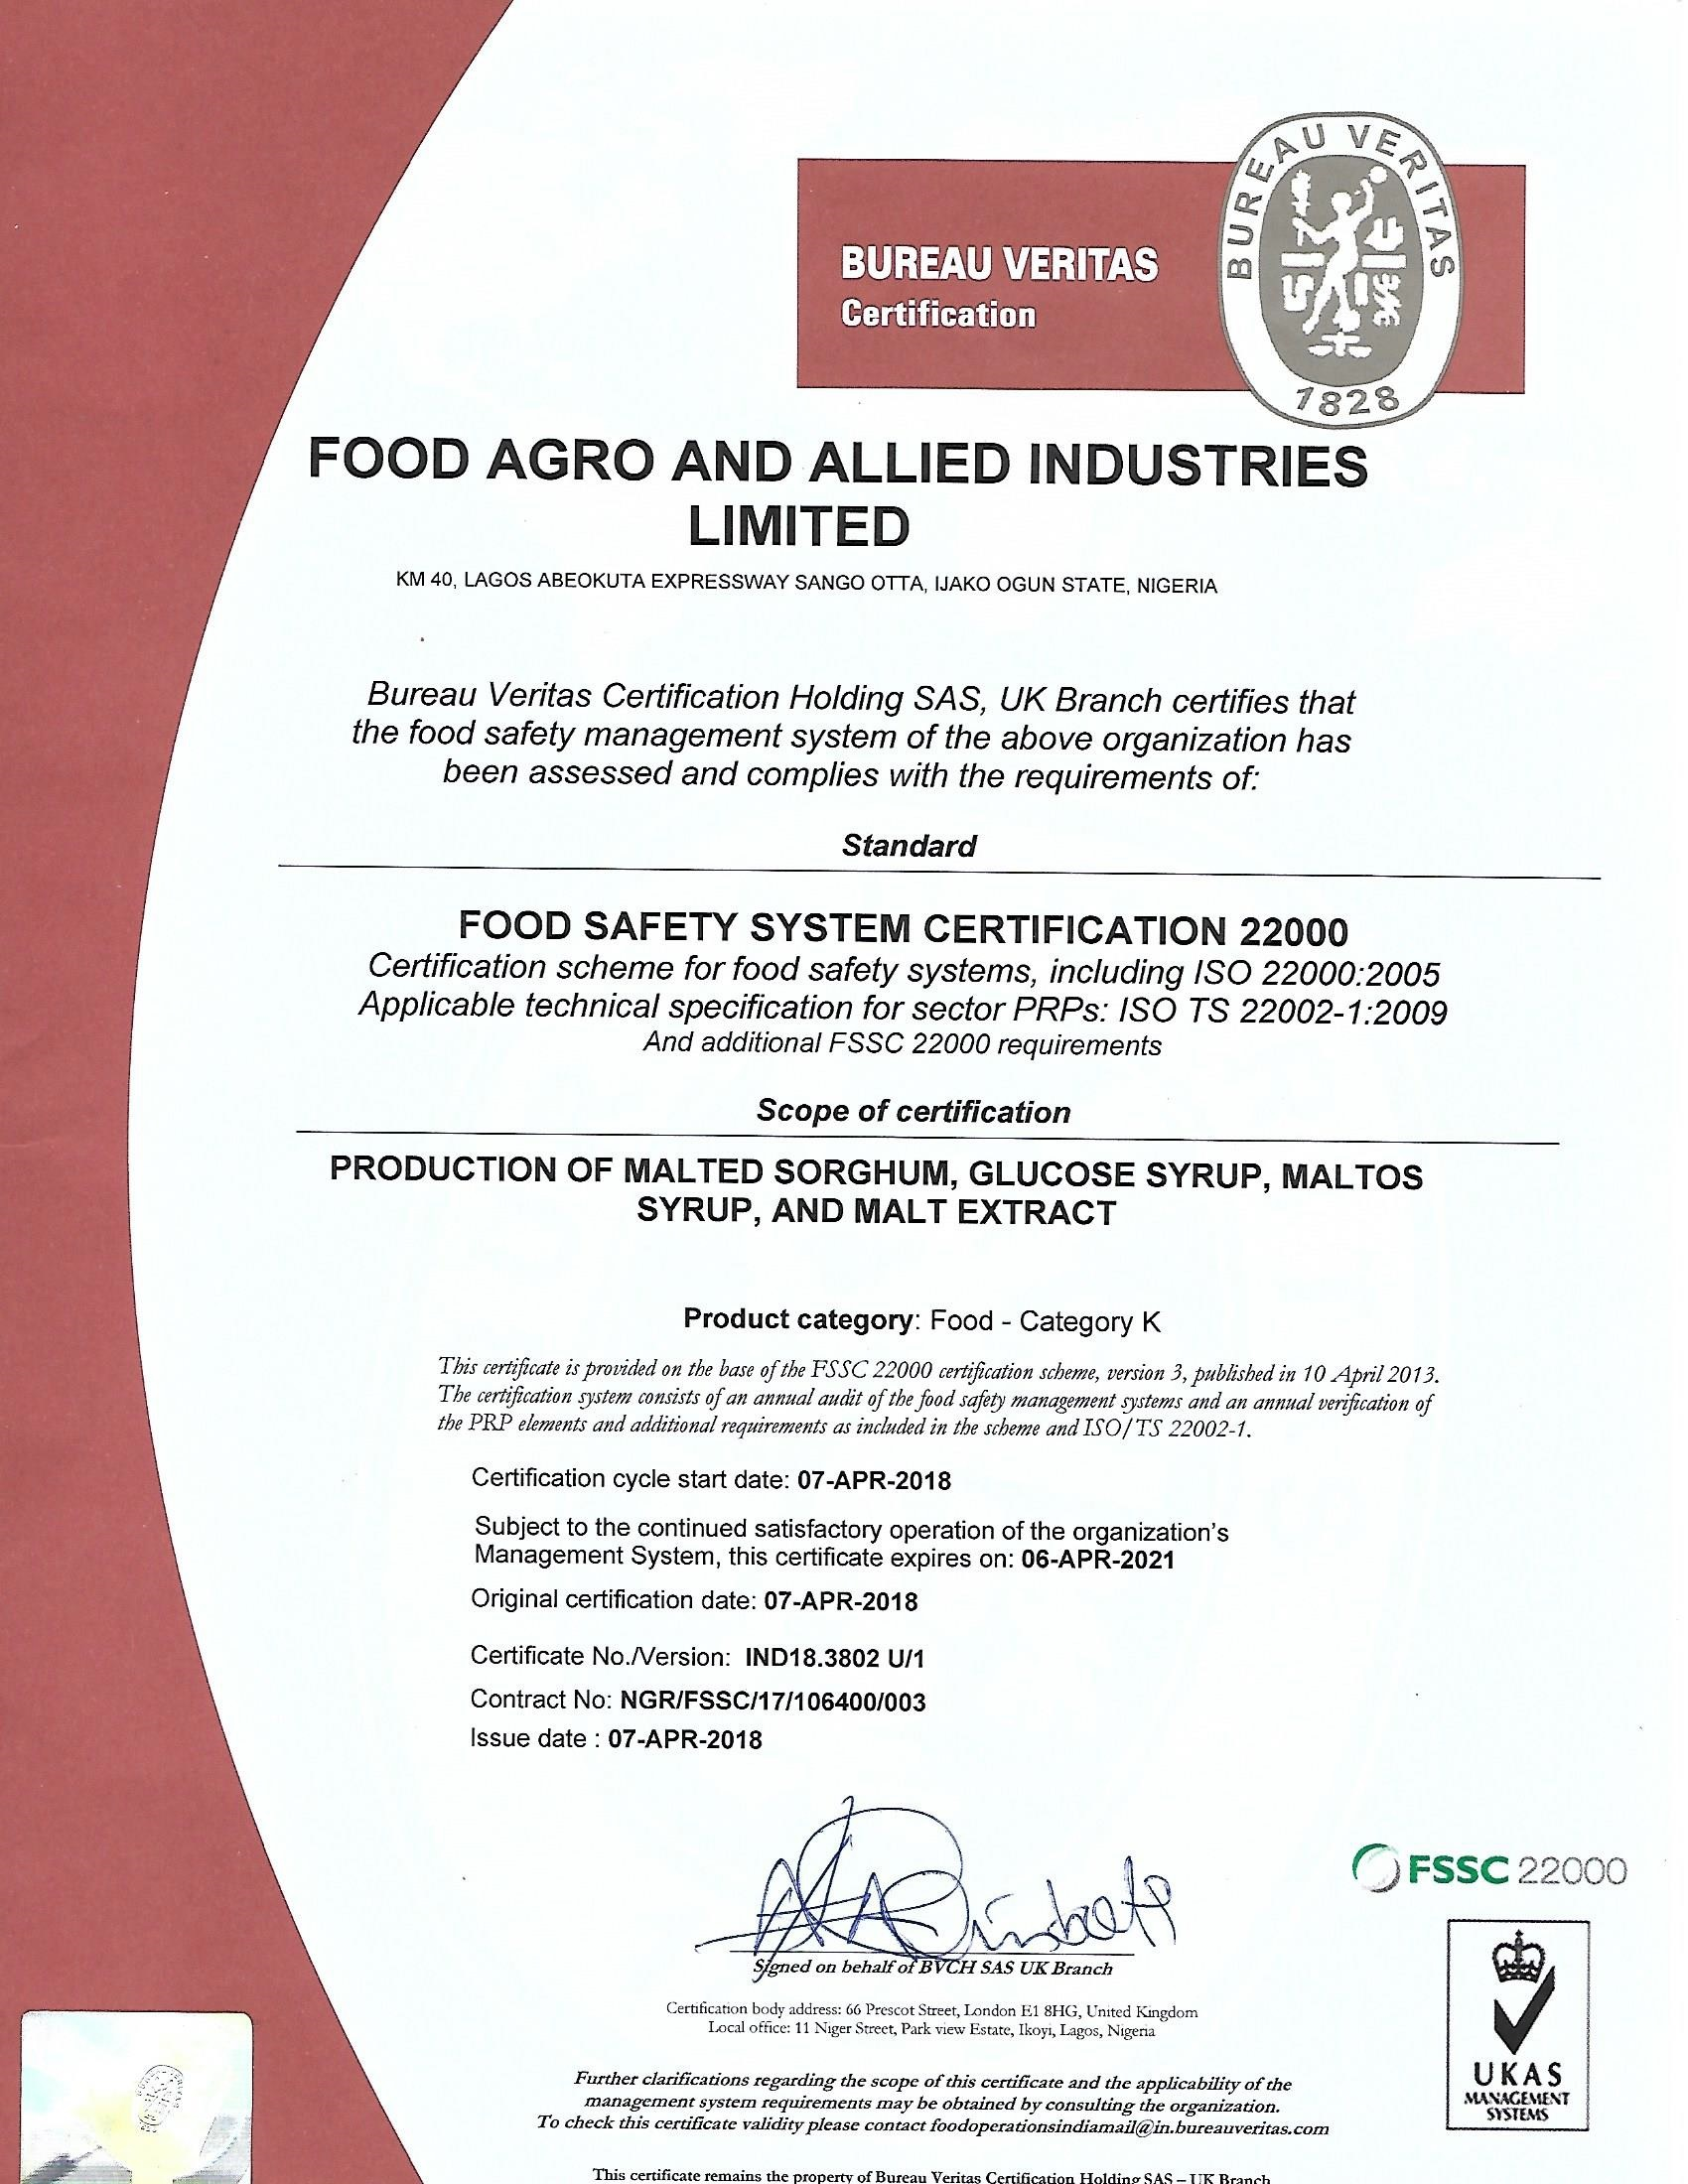 FOOD AGRO AND ALLIED INDUSTRIES LTD  awarded FOOD SAFETY